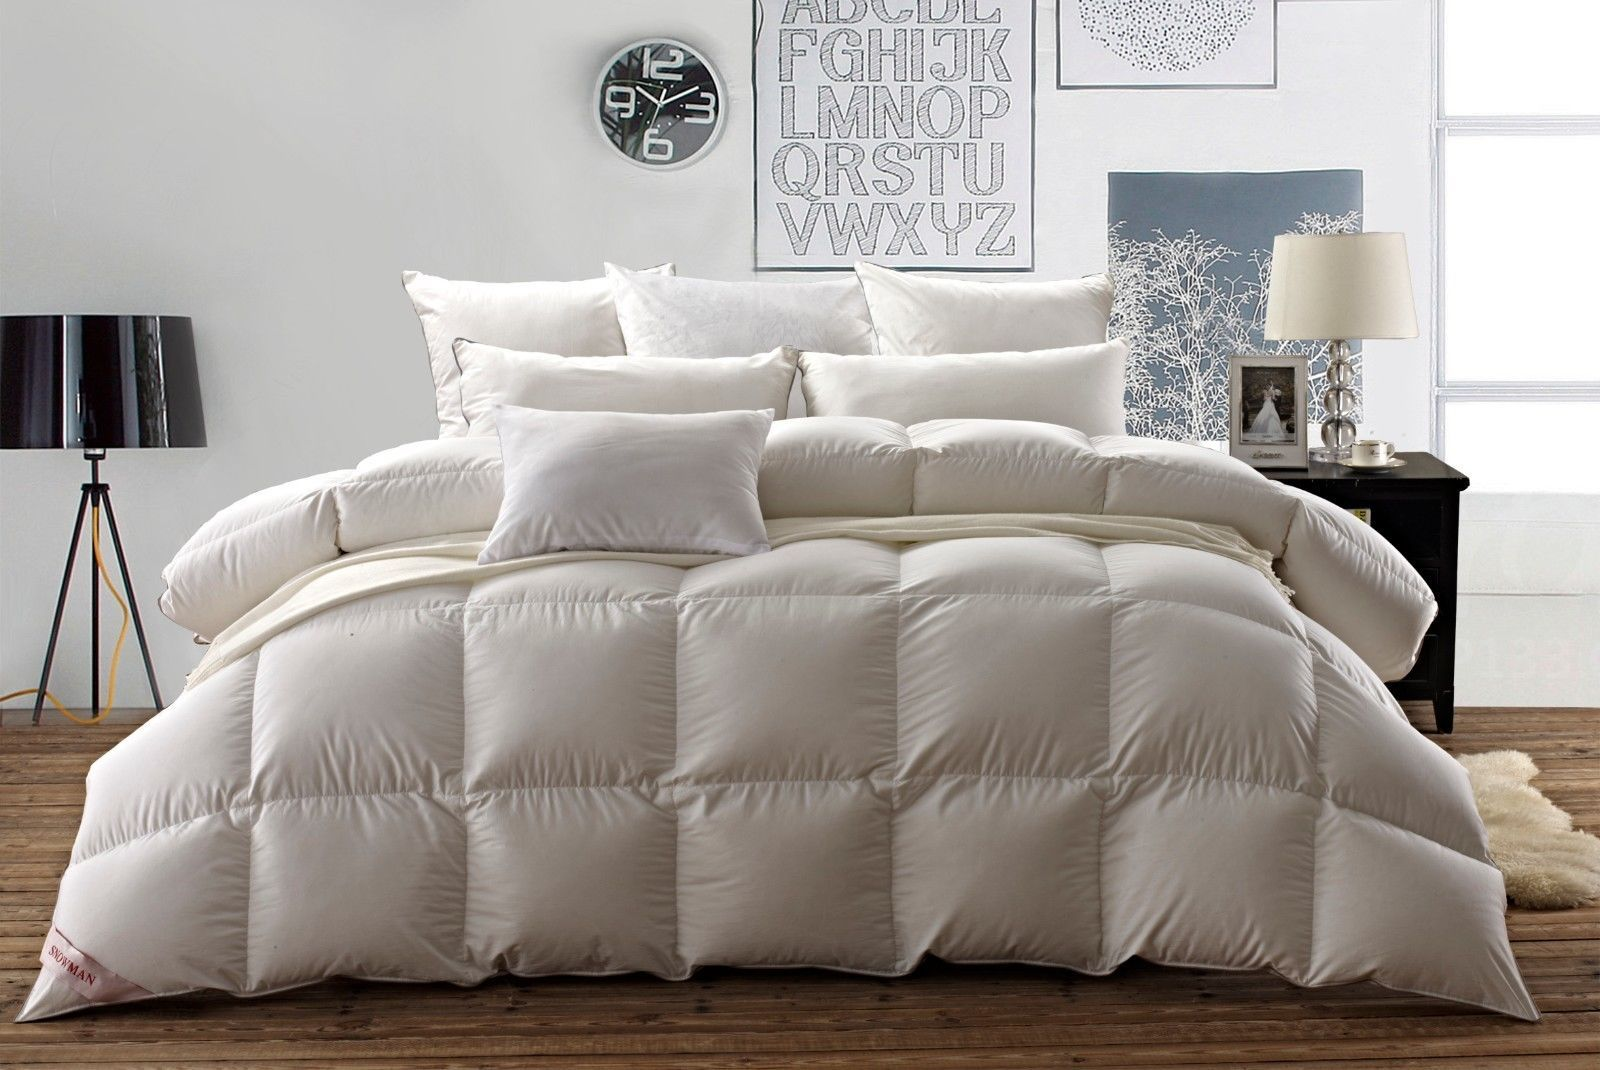 Snowman Soft White Bafflle Box Goose Down Duvet 100 Egyptian Cotton Shell Queen Down Comforter Duvet Comforters White Down Comforter